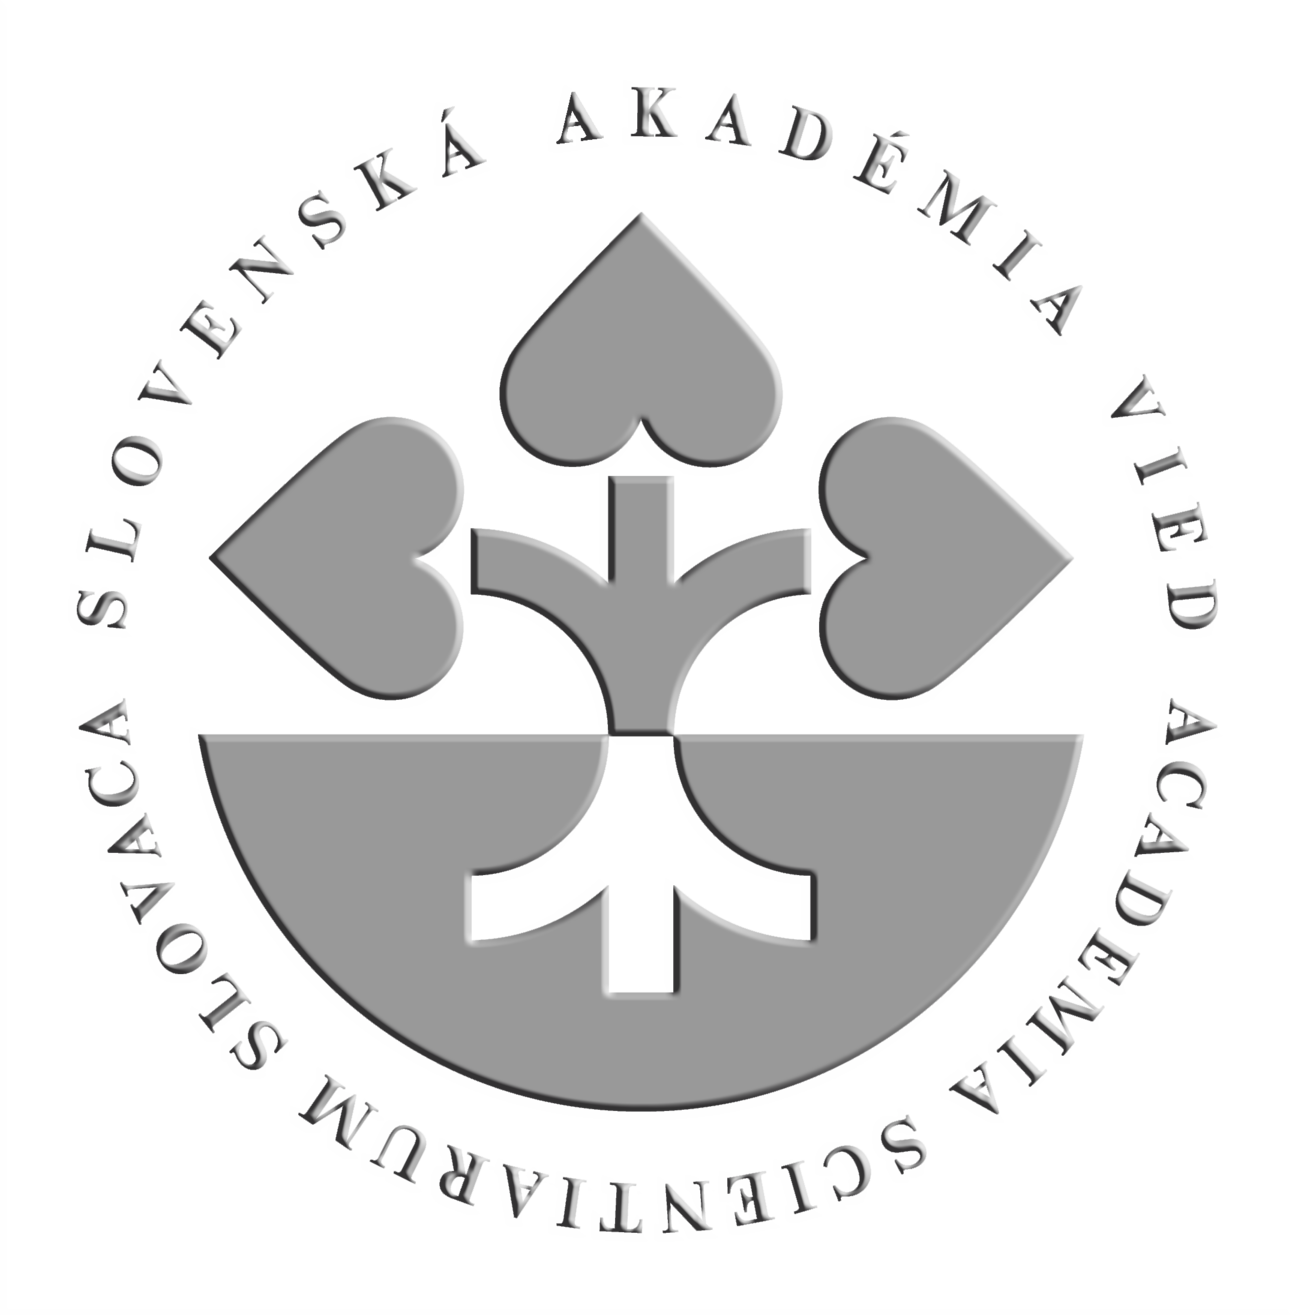 Logo of Slovak Academy of Sciences